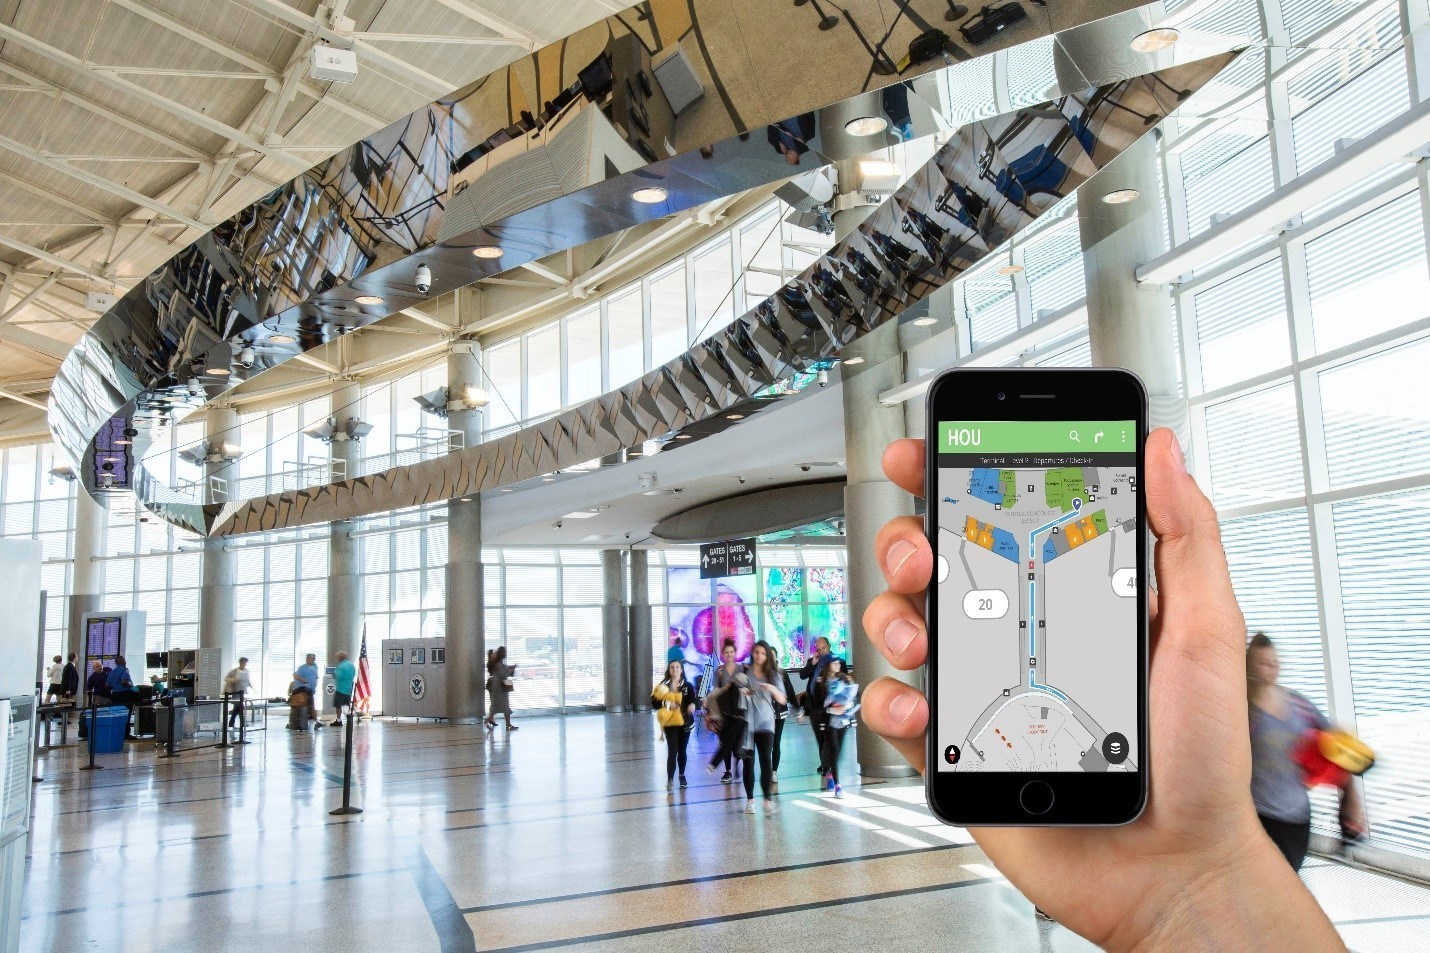 Αποτέλεσμα εικόνας για Houston Airports debuts world's first airport wayfinding technology